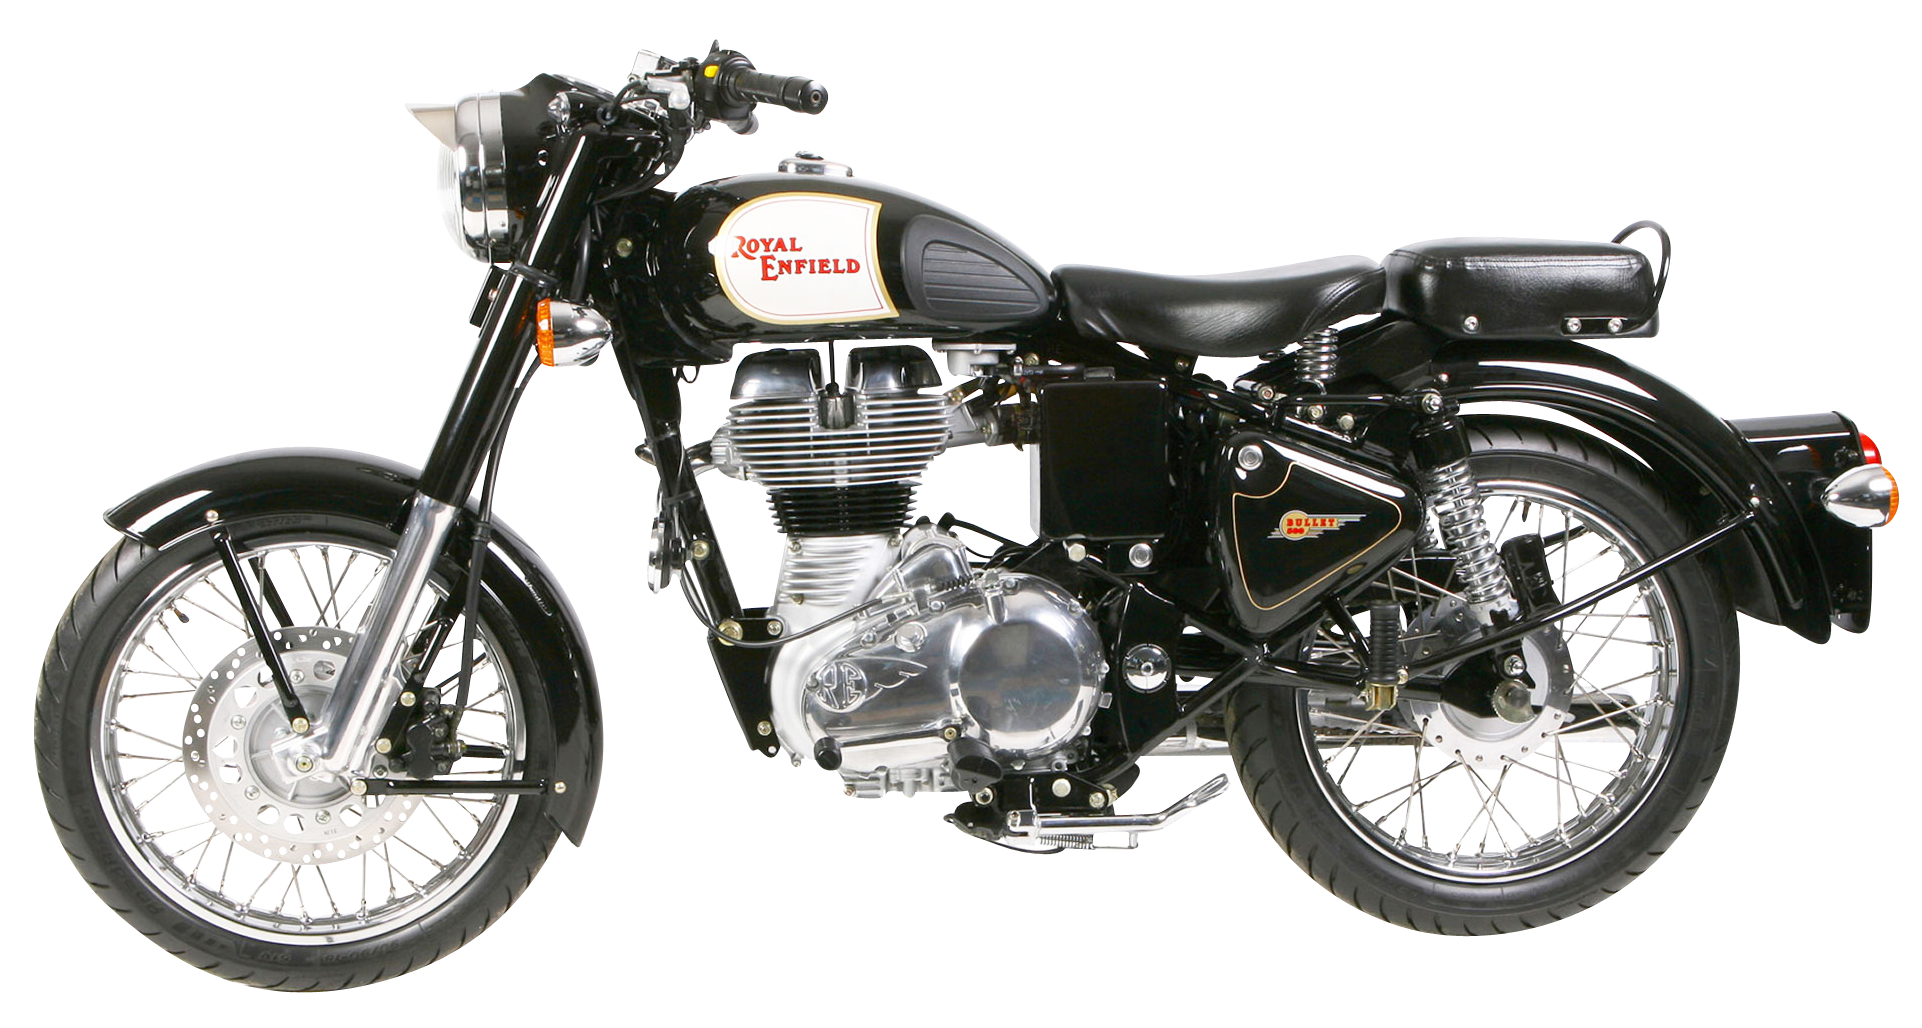 Royal enfield classic black. Motorcycle clipart bullet bike